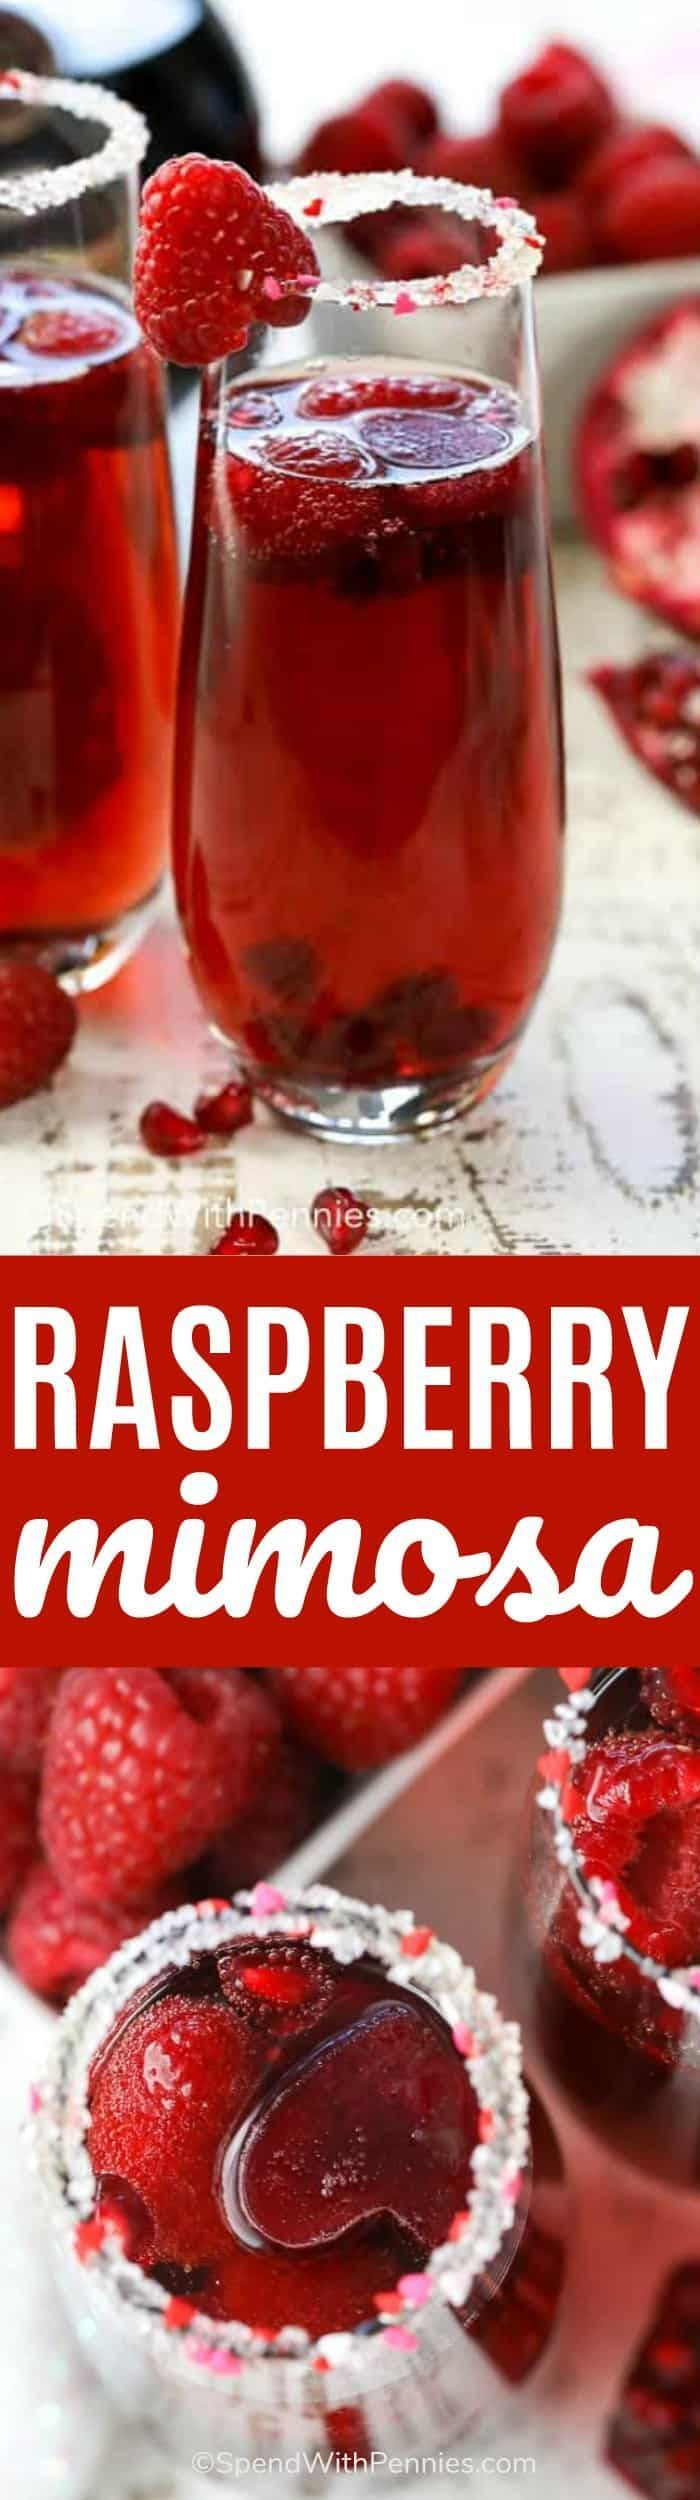 Raspberry Mimosa Is Made With Raspberry Liqueur And Frosty Pomegranate Juice Ice Cubes Topped With Bubb Holiday Drinks Alcohol Raspberry Liqueur Holiday Drinks